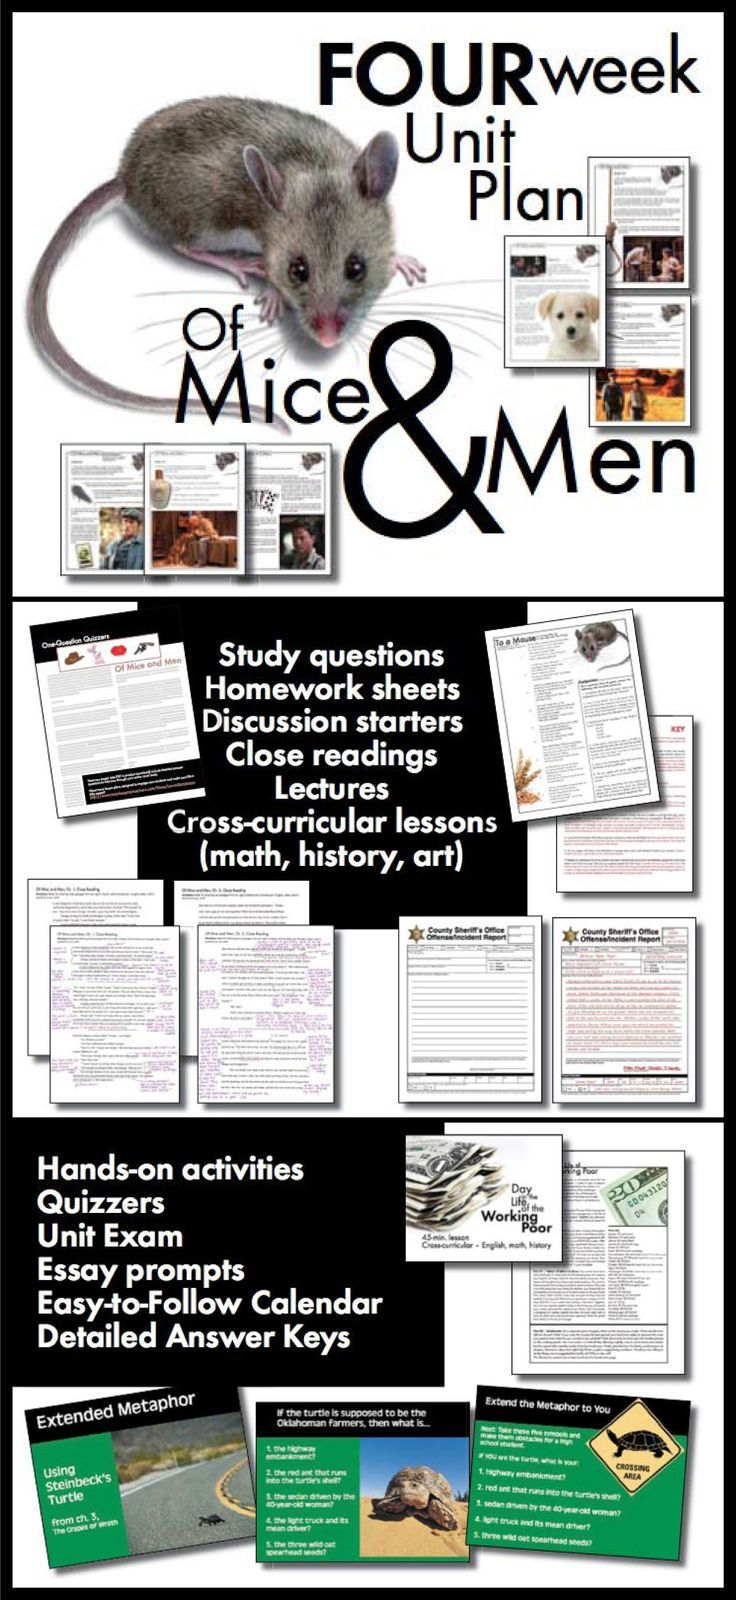 of mice and men literary analysis essay audrey doss english  best images about classroom of mice and men of mice and men unit plan four full